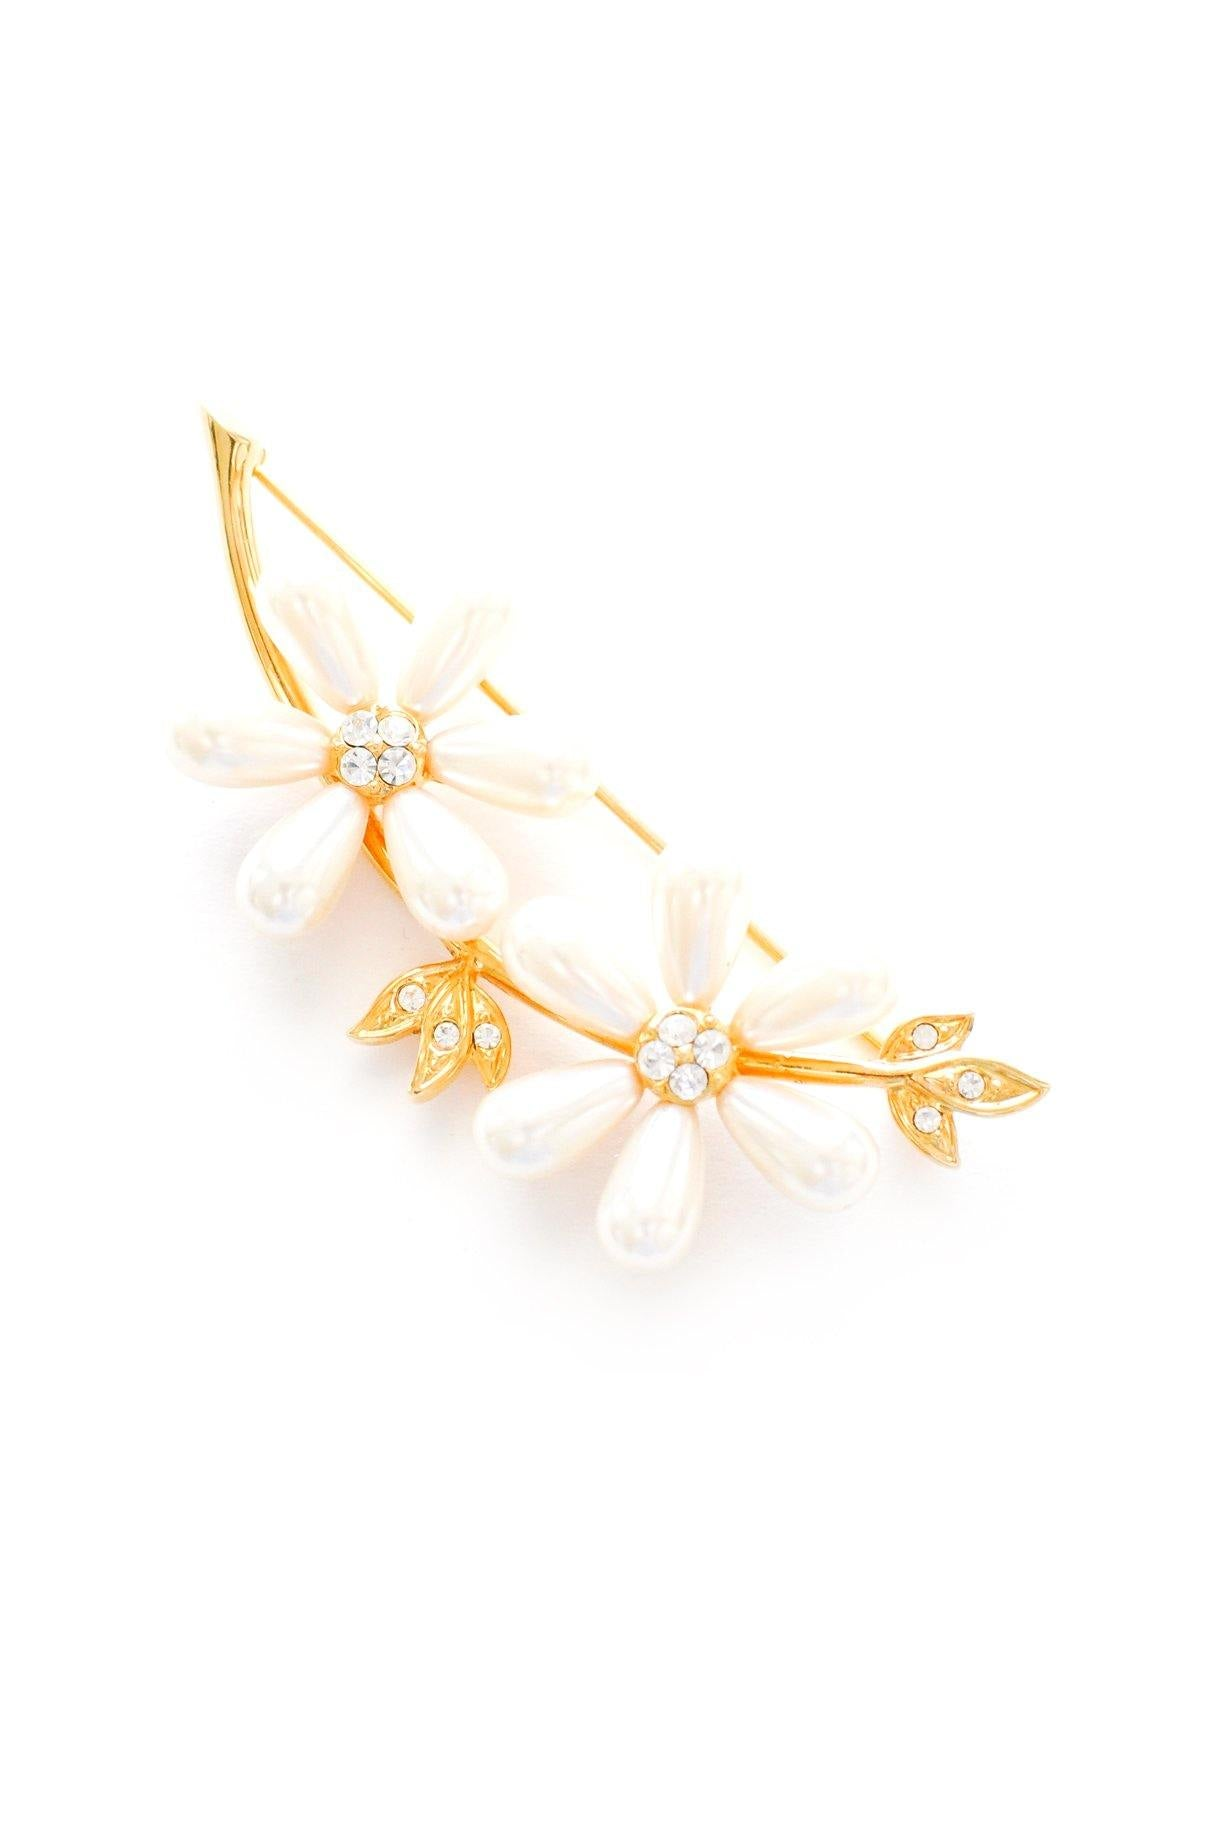 Pearl Floral Branches Brooch